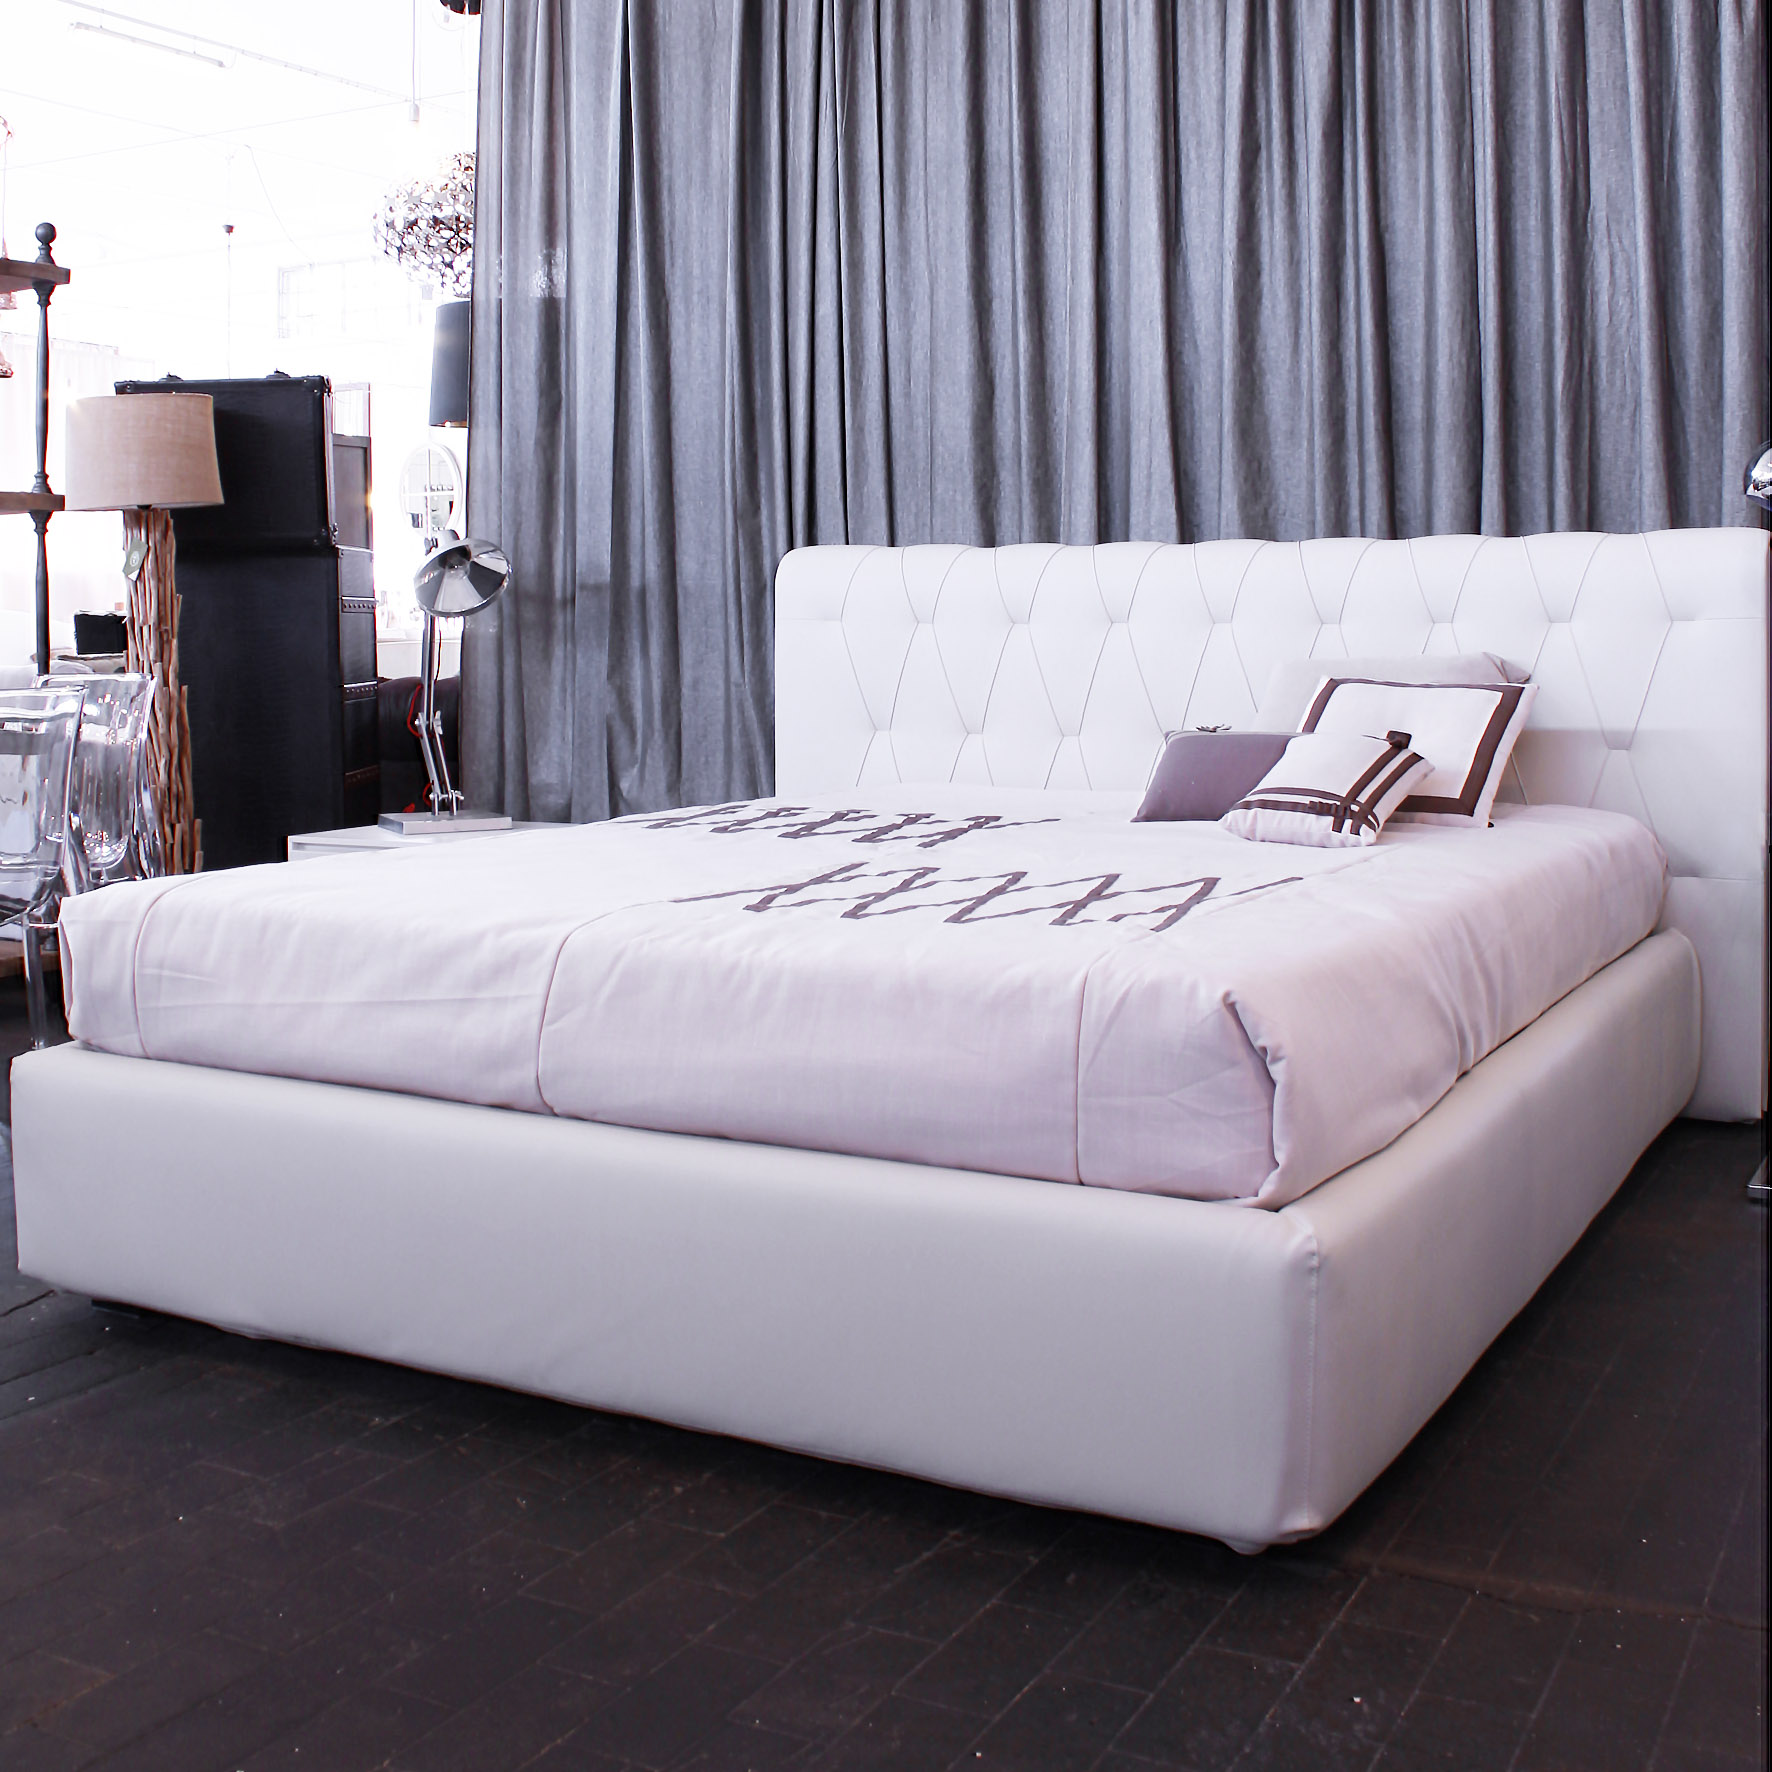 http://www.outletarredamentodesign.it/wp-content/uploads/2015/05/letto-bianco-2.jpg